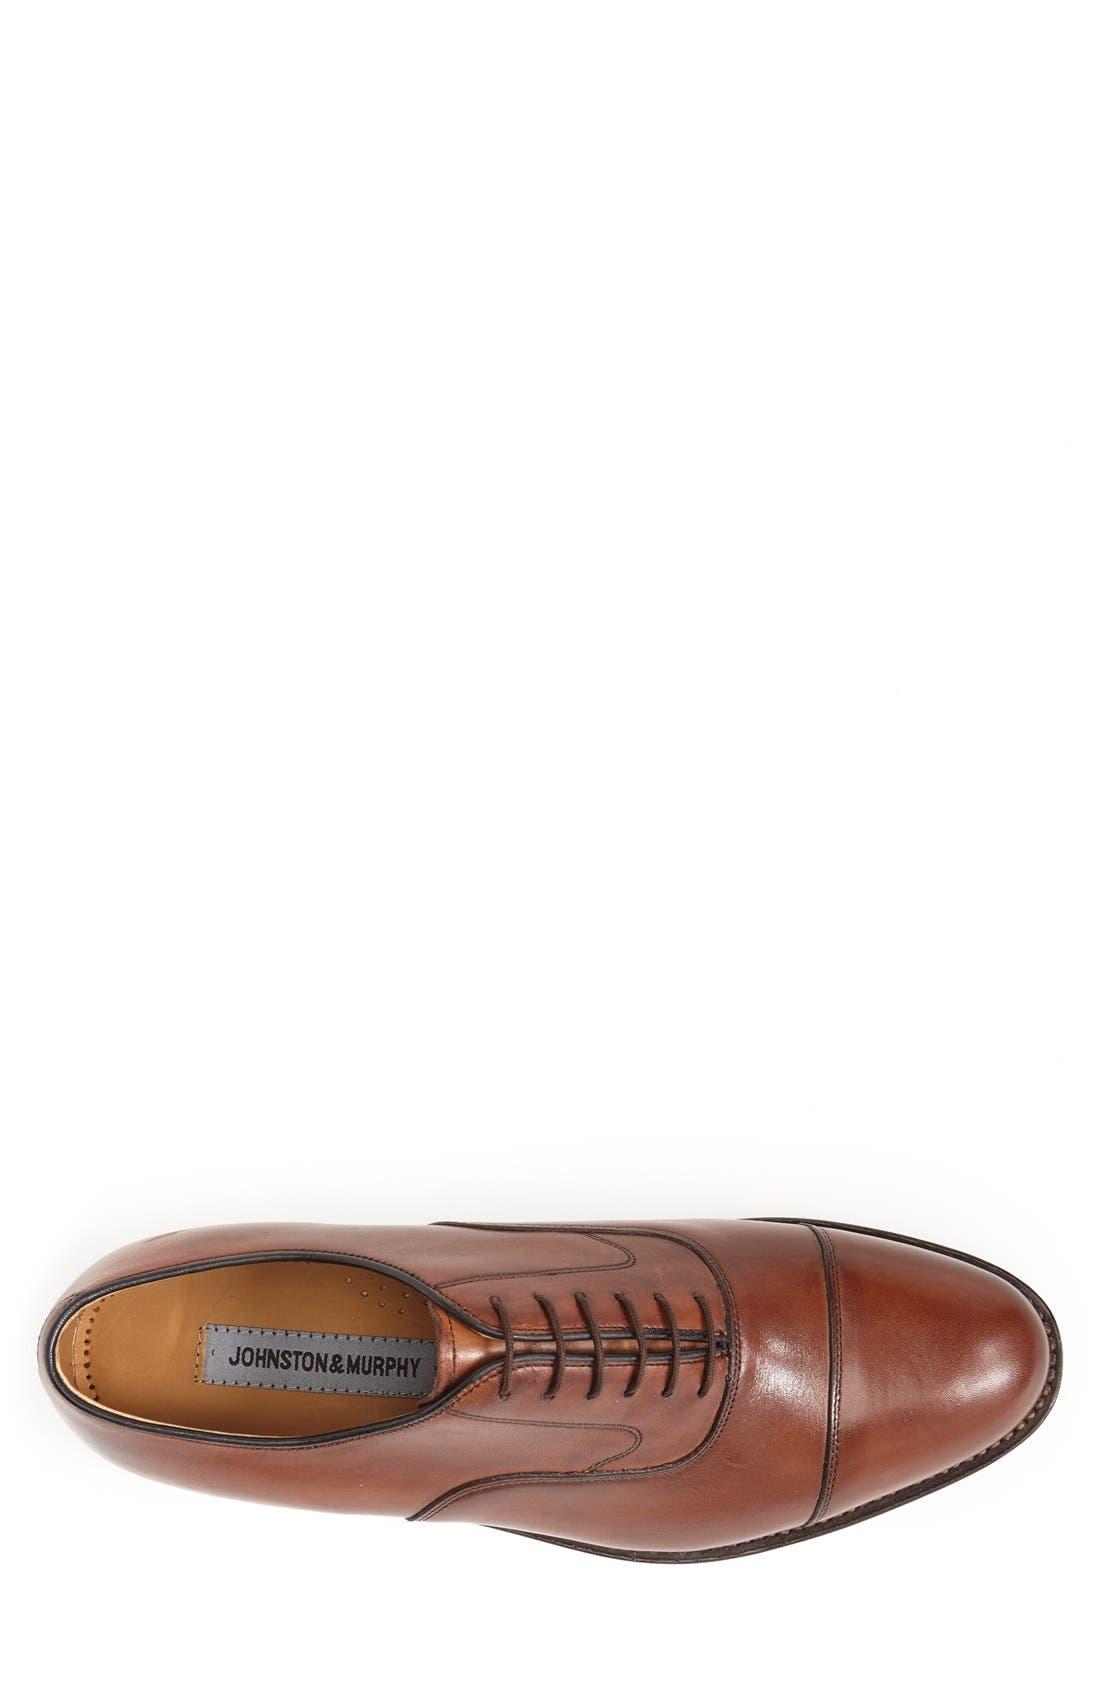 Alternate Image 3  - Johnston & Murphy 'Melton' Oxford (Men)